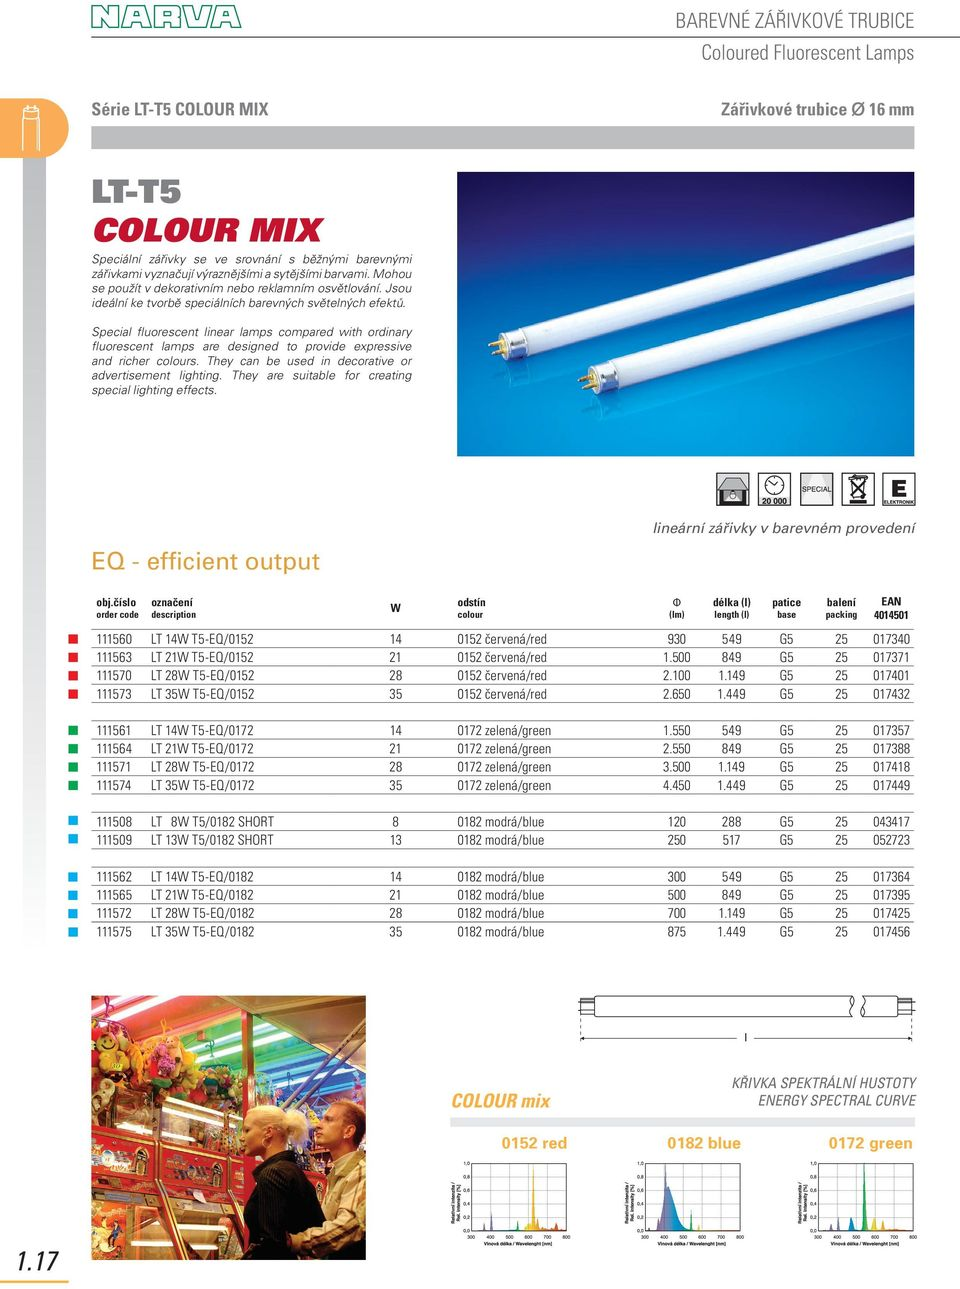 Special fluorescent linear lamps compared with ordinary fluorescent lamps are designed to provide expressive and richer s. They can be used in decorative or advertisement lighting.